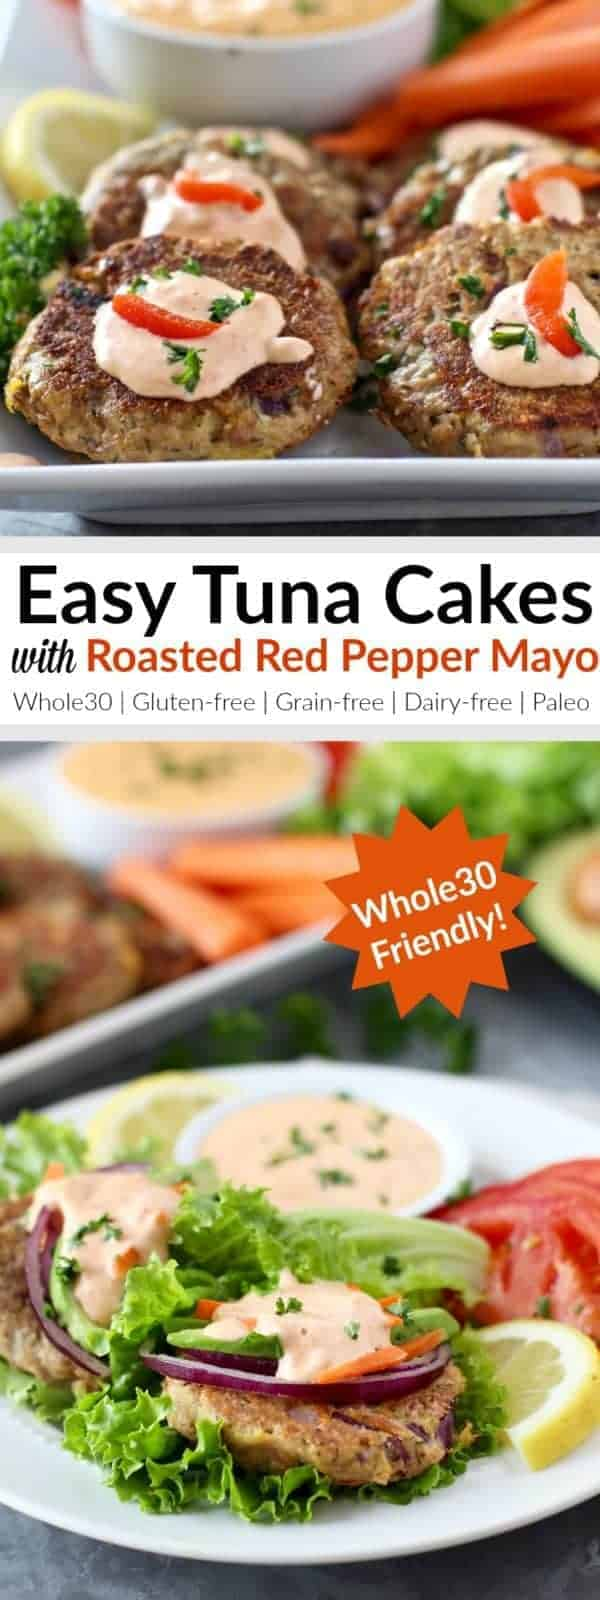 pinterest image for Easy Tuna Cakes with Roasted Red Pepper Mayo